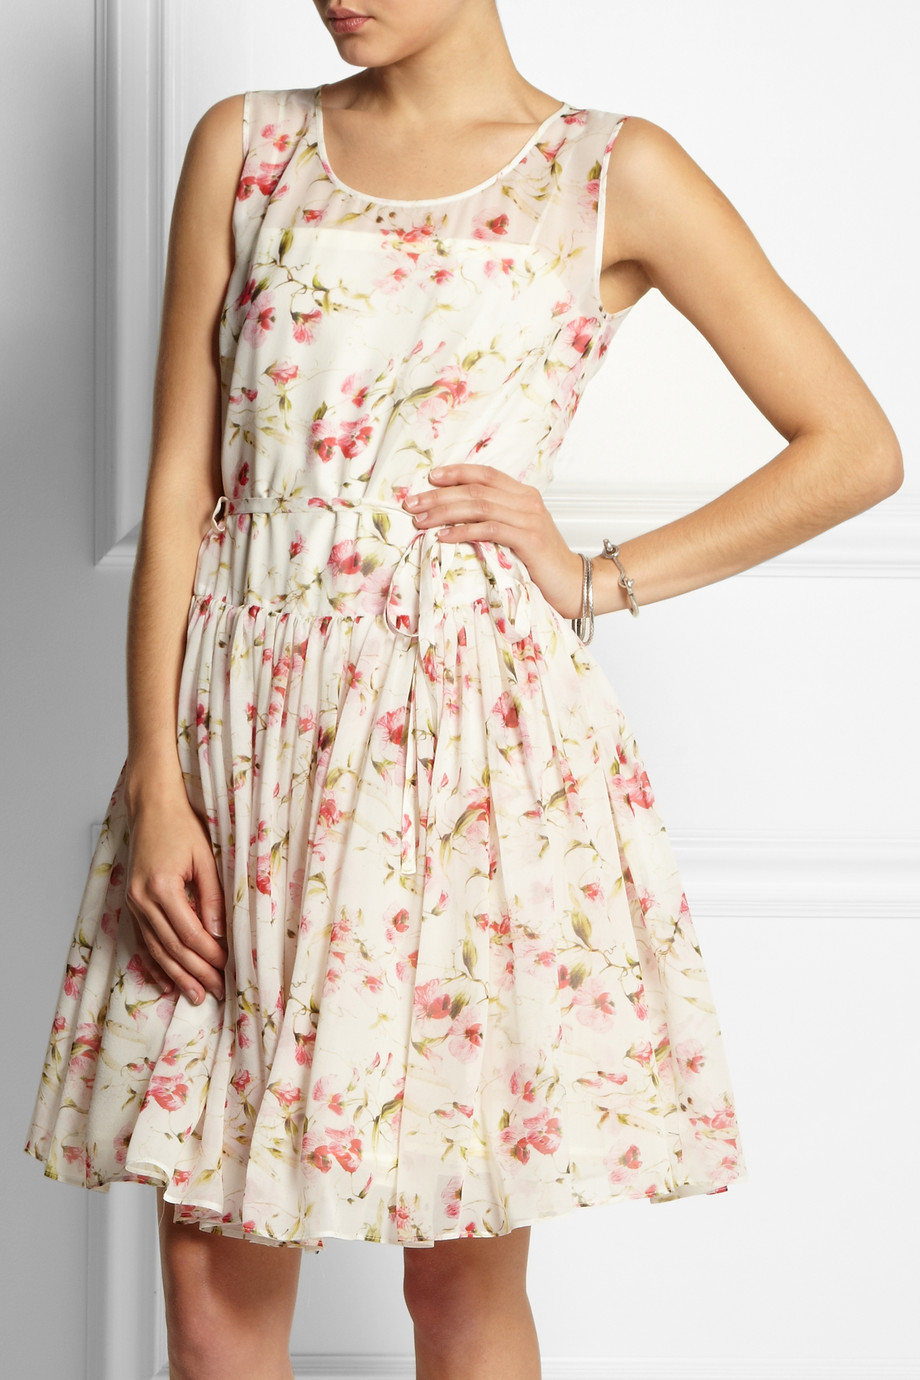 Shoulders floral silk chiffon dress agree, remarkable